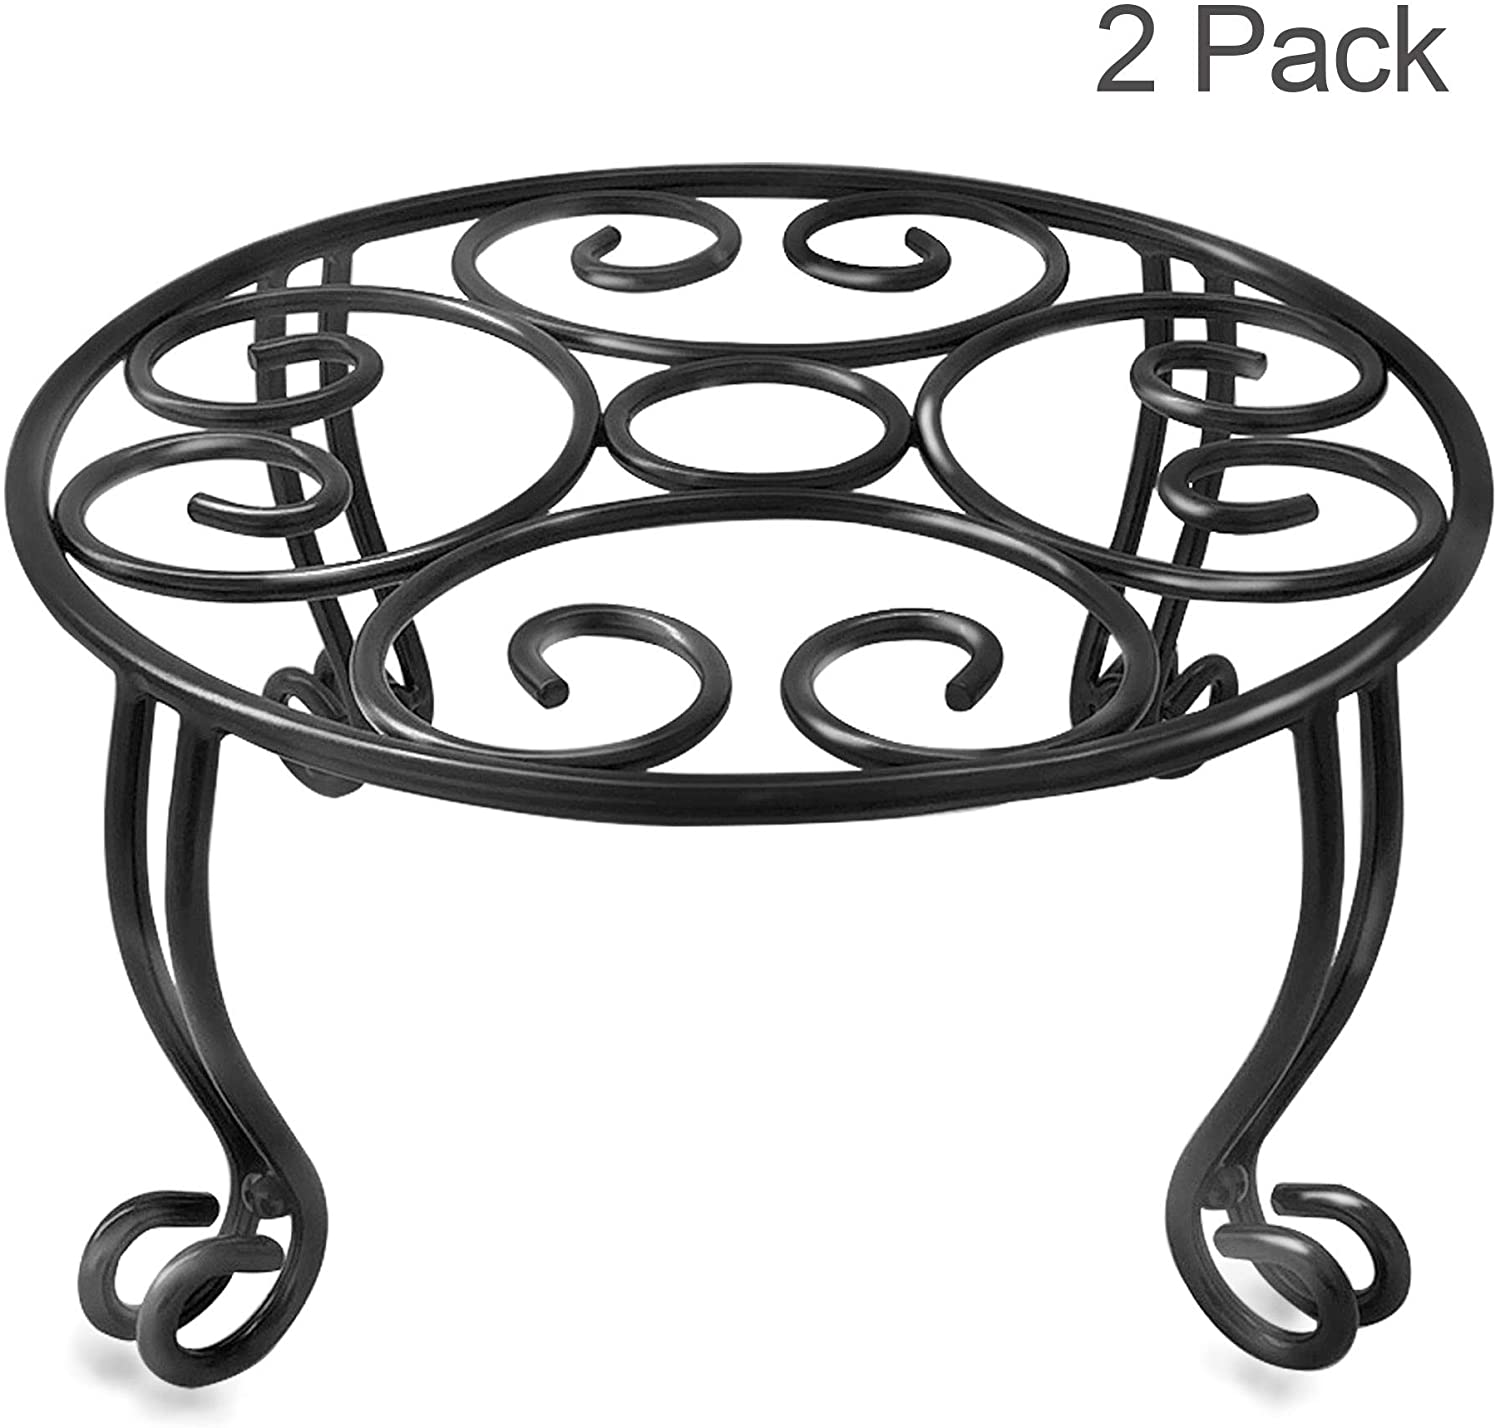 TREEZITEK Plant Stand for Flower Pot 6IN Height Heavy Duty Potted Holder Indoor Outdoor Metal Rustproof Iron Garden Container Round Supports Rack for Planter